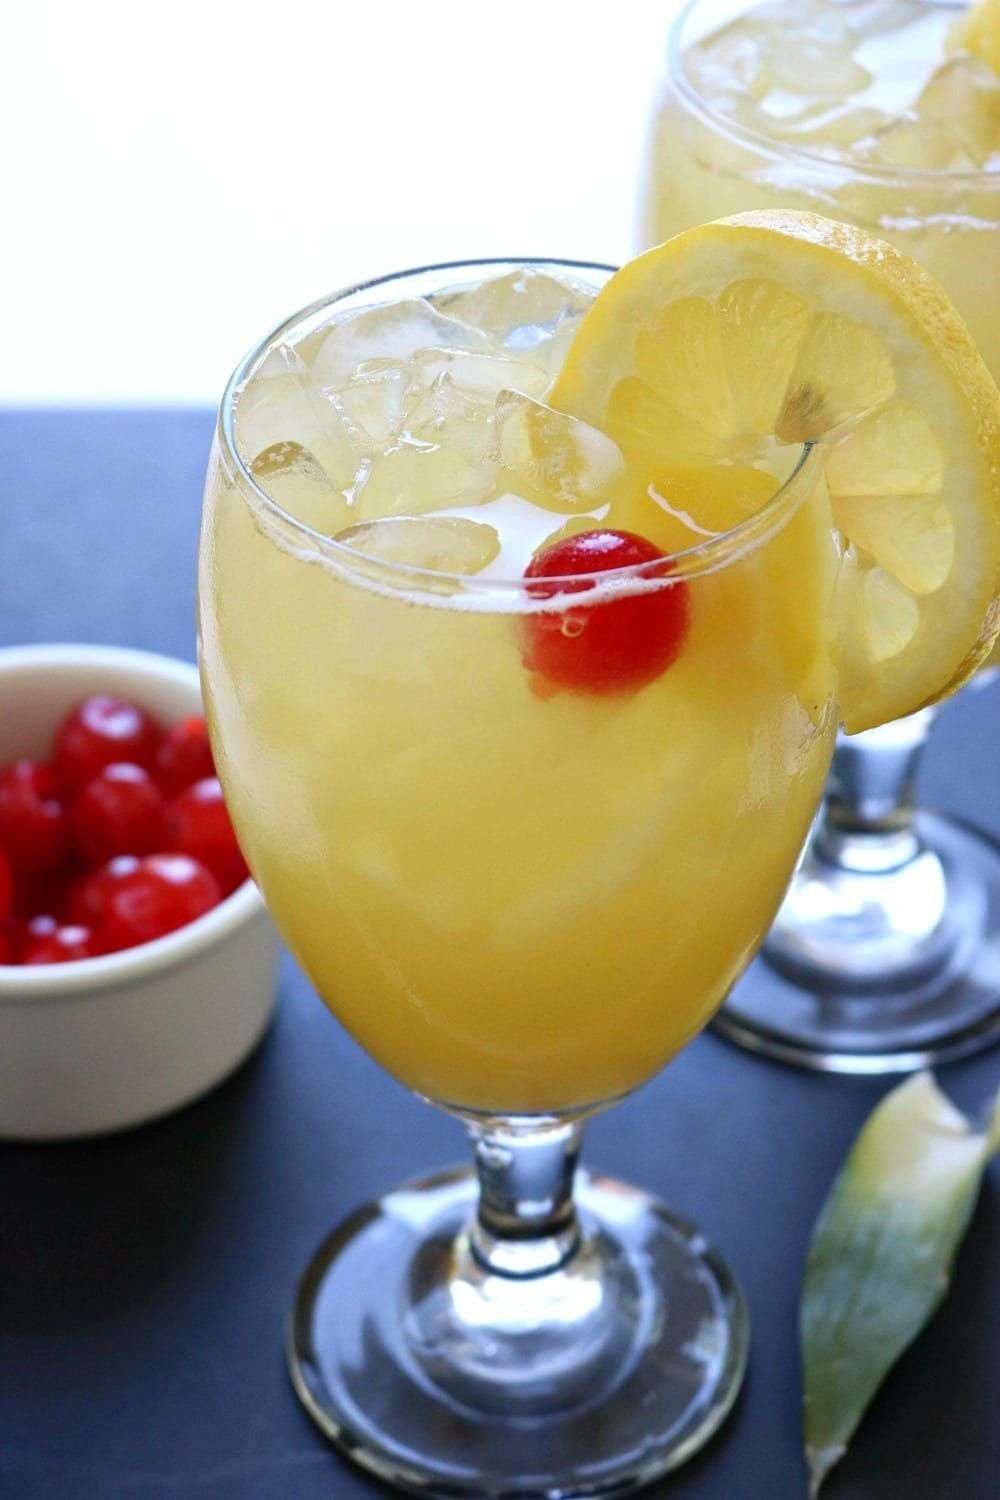 Pineapple Lemonade and Pineapple Lemonade Punch - a delicious drink made with real pineapple! #pineapple #drinks #drinkrecipes #cherry #lemonade #lemon #pineapplelemonade Pineapple Lemonade and Pineapple Lemonade Punch - a delicious drink made with real pineapple! #pineapple #drinks #drinkrecipes #cherry #lemonade #lemon #pineapplelemonade Pineapple Lemonade and Pineapple Lemonade Punch - a delicious drink made with real pineapple! #pineapple #drinks #drinkrecipes #cherry #lemonade #lemon #pinea #pineapplelemonade